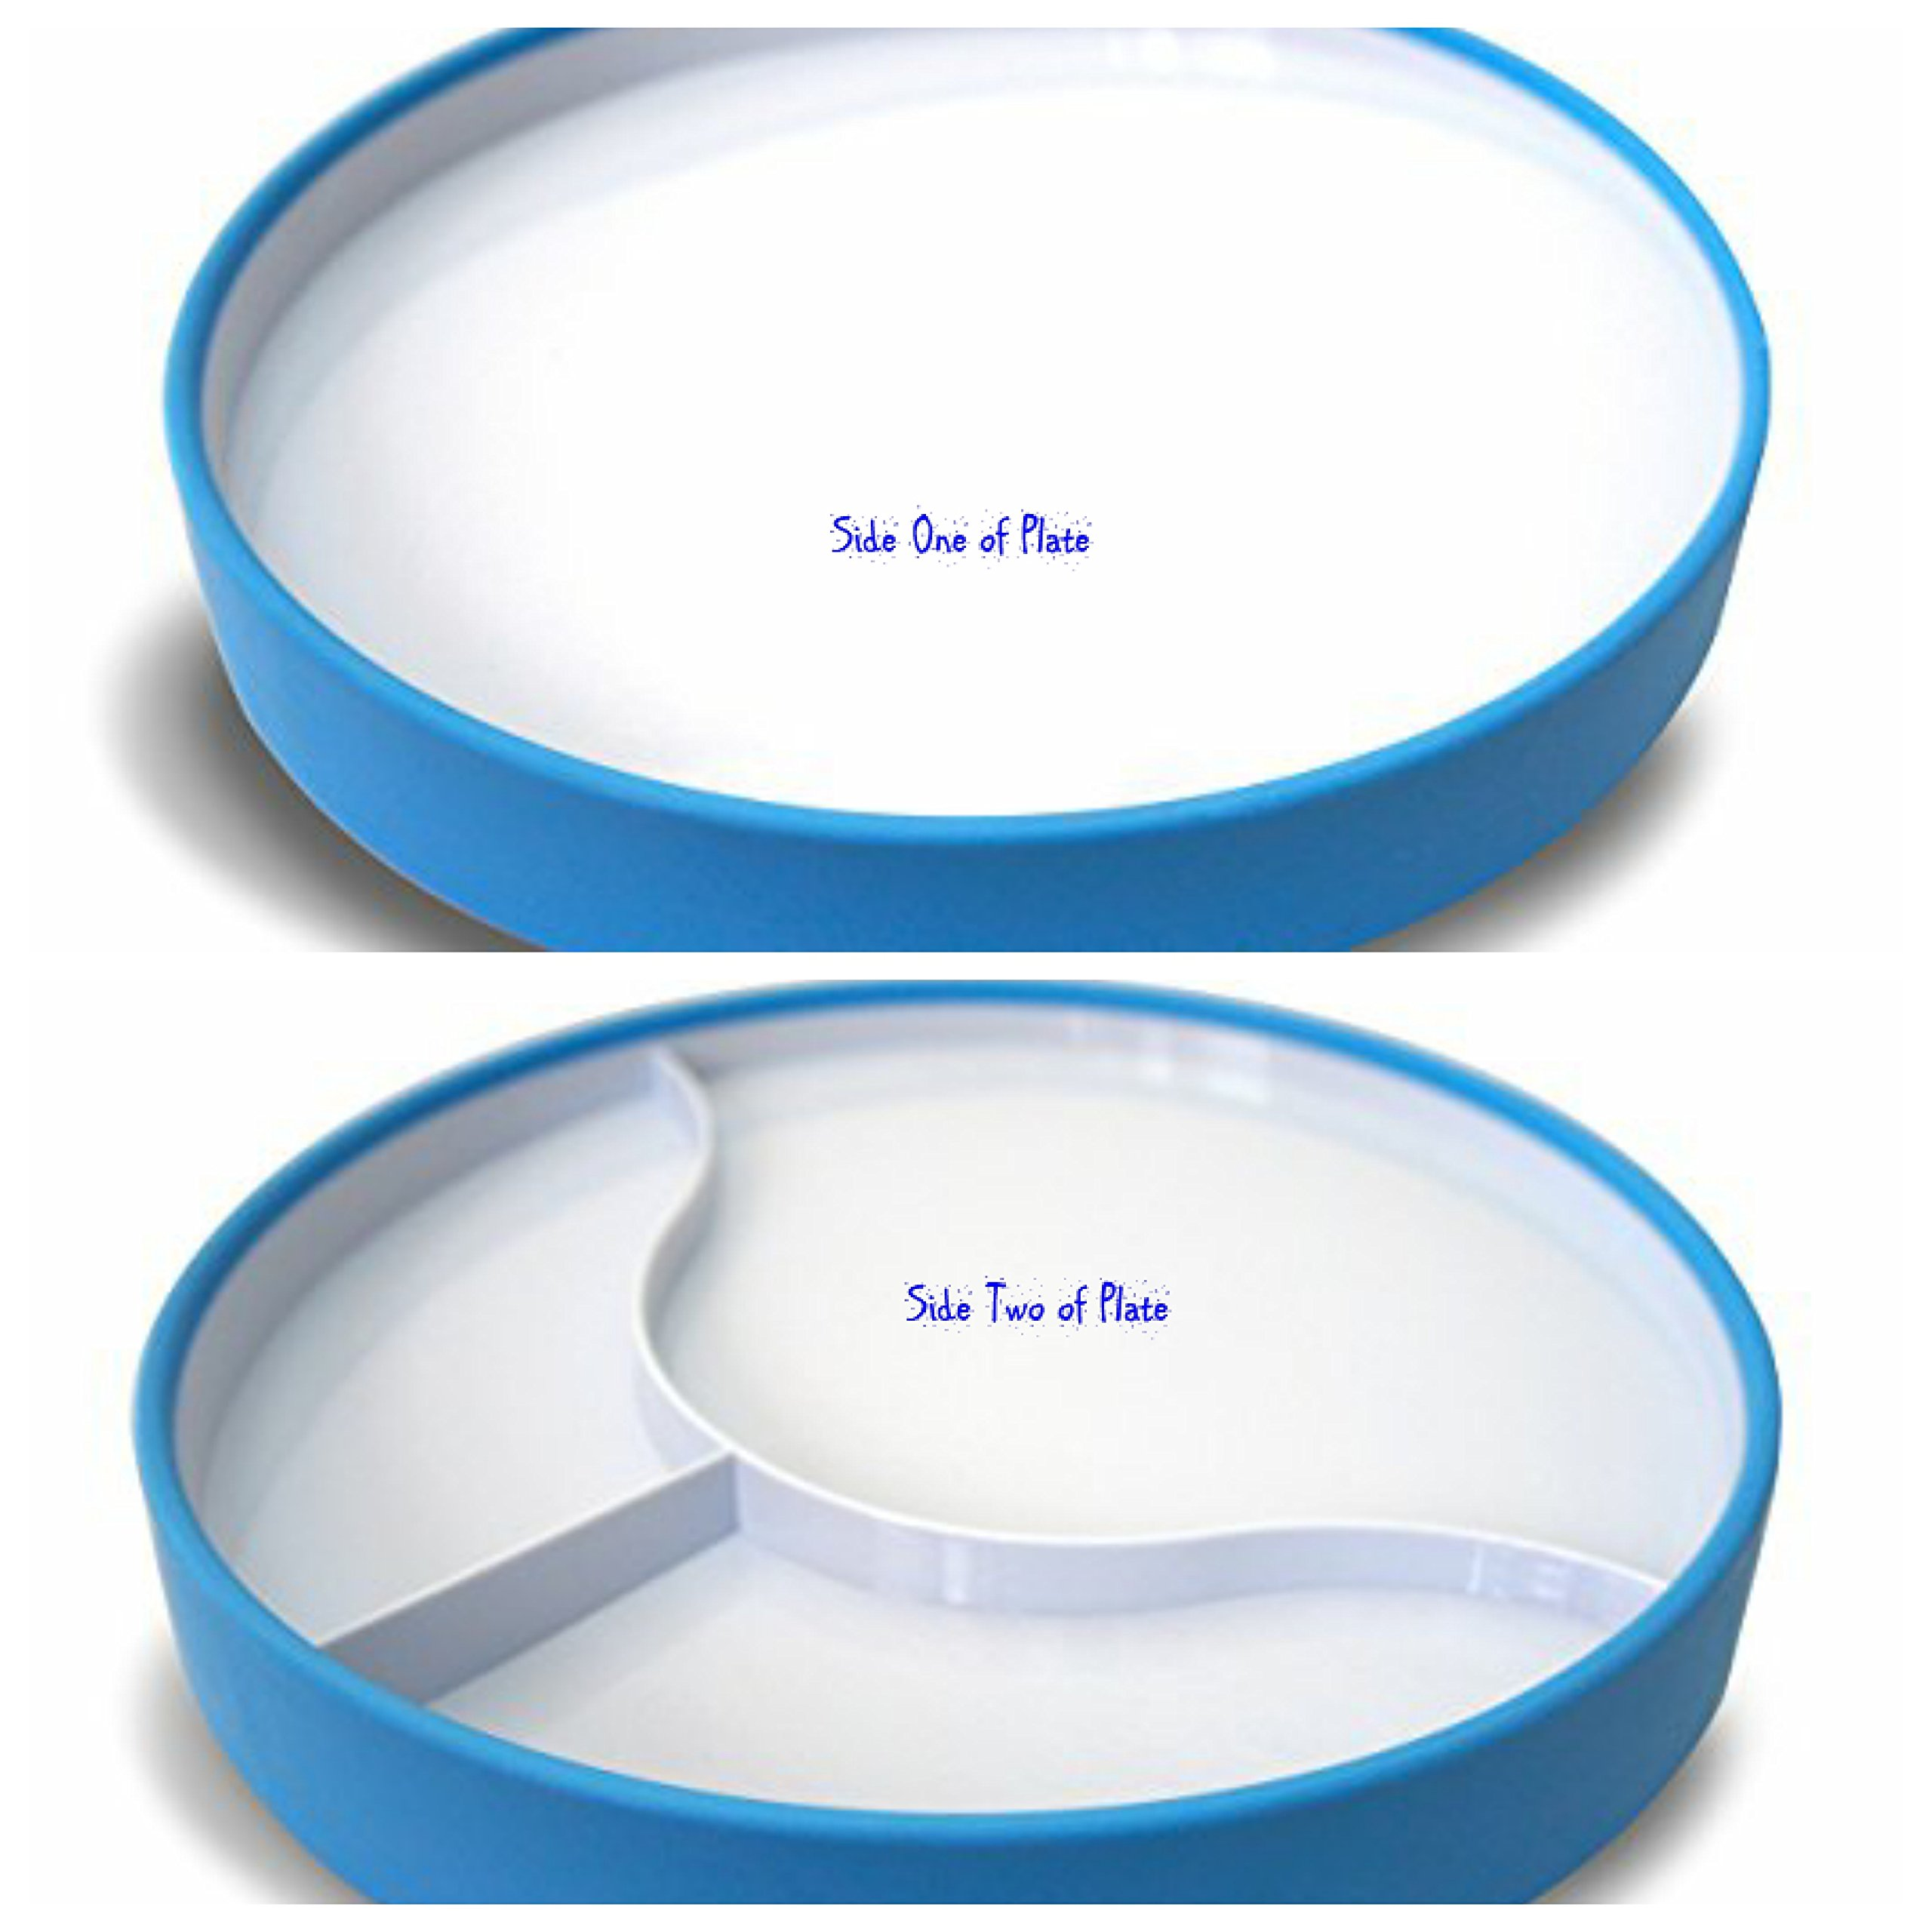 Stay N Eat Reversible 9'' Non Slip Plate with 1'' High Sides and Slight Angle to Plate for Food to Slide Down